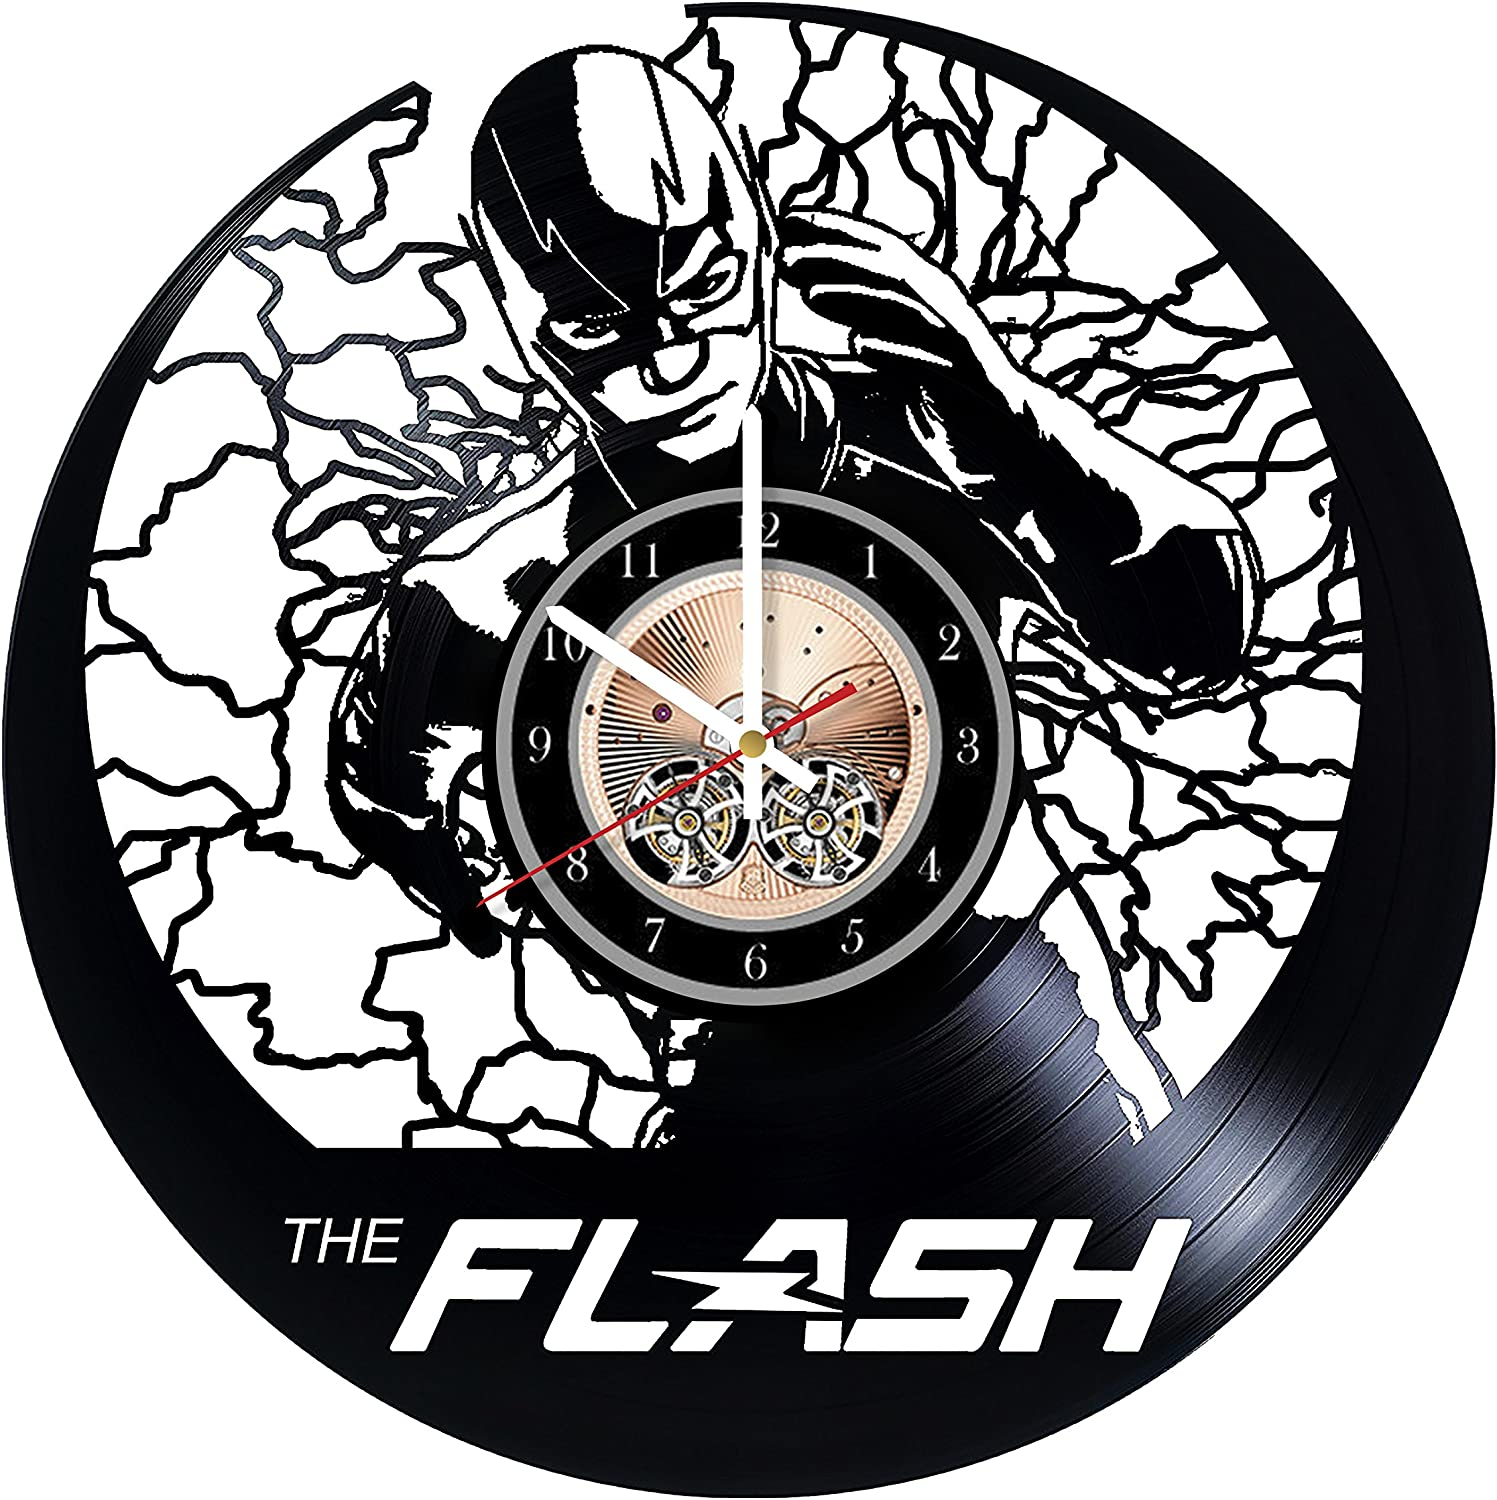 Wood Workshop Flash Marvel Comics Vinyl Record Wall Clock - Get Unique Bedroom or Living Room Wall Decor - Gift Ideas for him and her